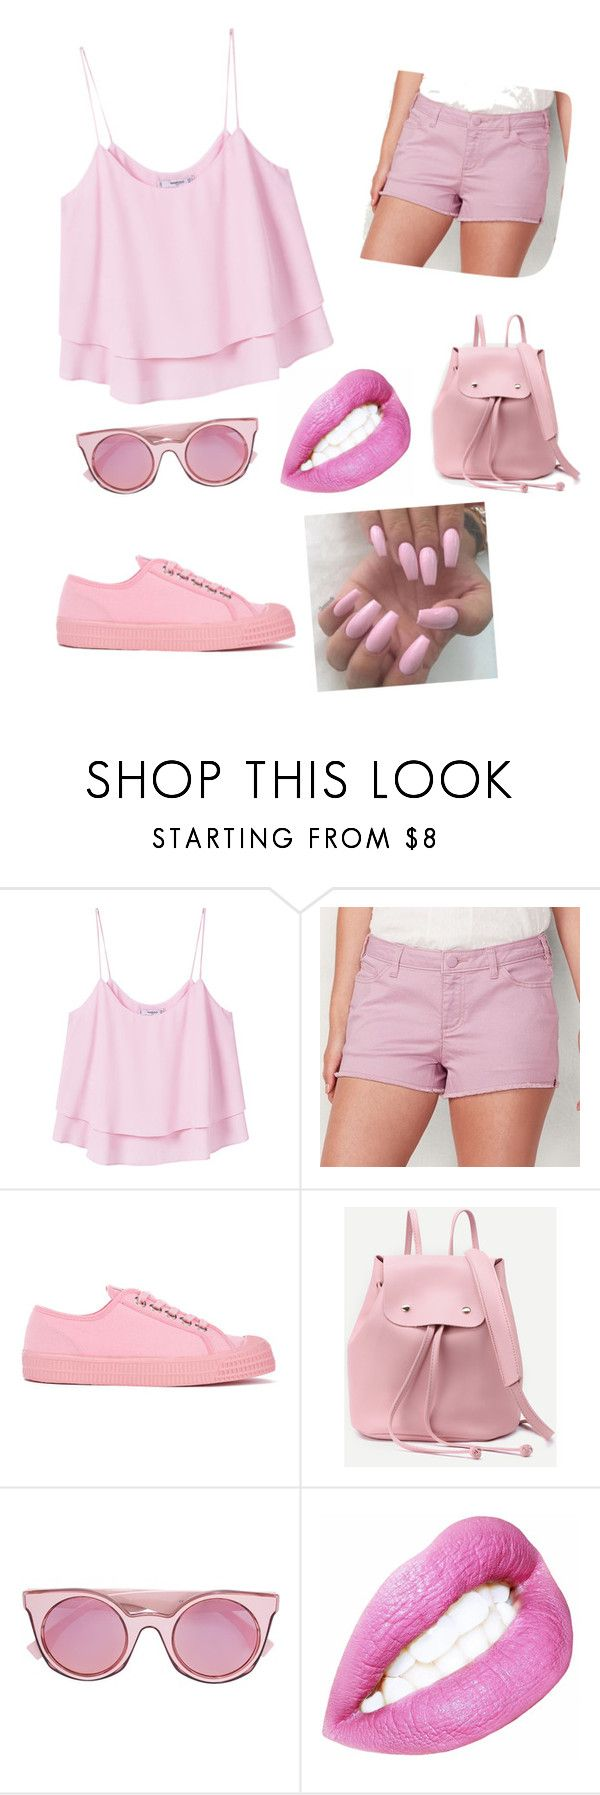 """one colour"" by buflie ❤ liked on Polyvore featuring MANGO, LC Lauren Conrad, Novesta and Fendi"